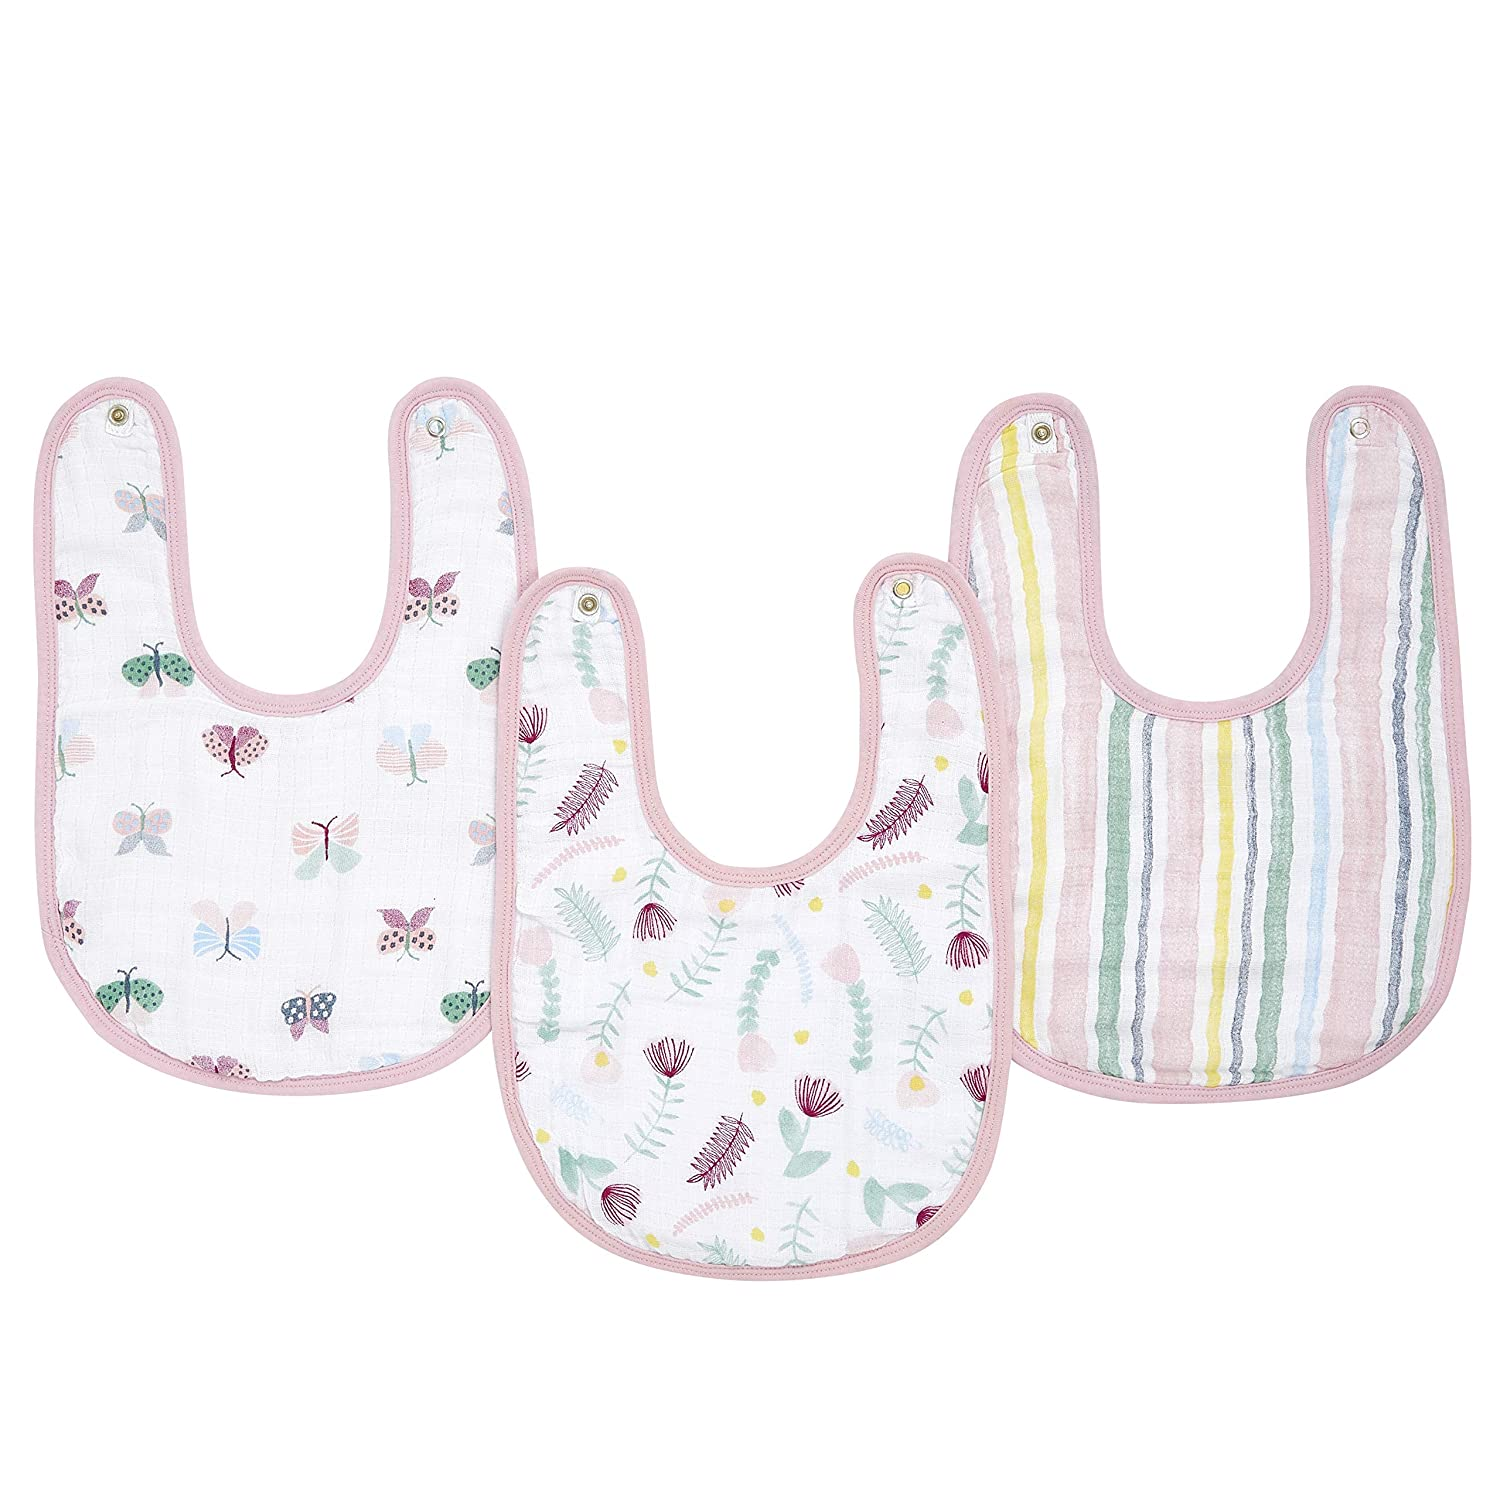 Adjustable with Snaps anais Snap Baby Bib Newborns and Toddlers Super Soft /& Absorbent for Infants aden 3 Pack Floral 3 Layer Burp Cloth 100/% Cotton Muslin